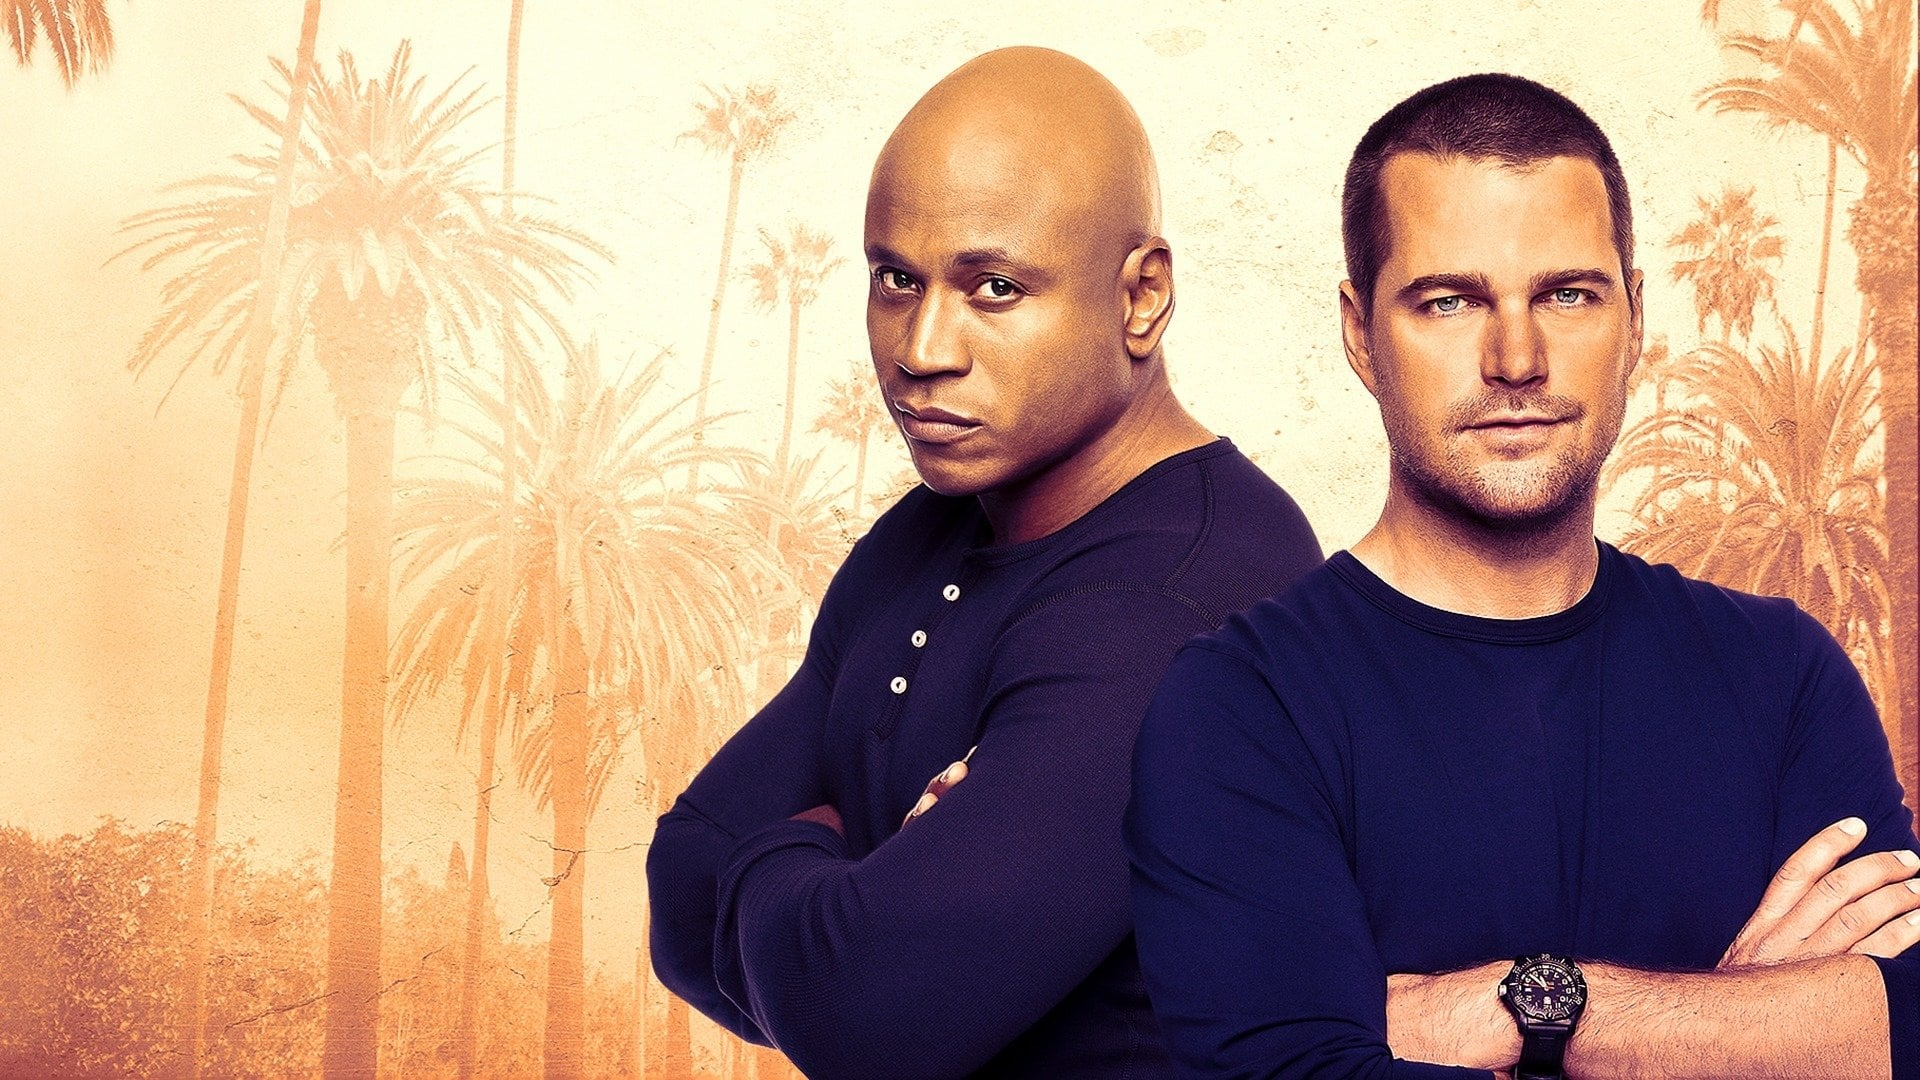 NCIS: Los Angeles Season 12 Episode 1